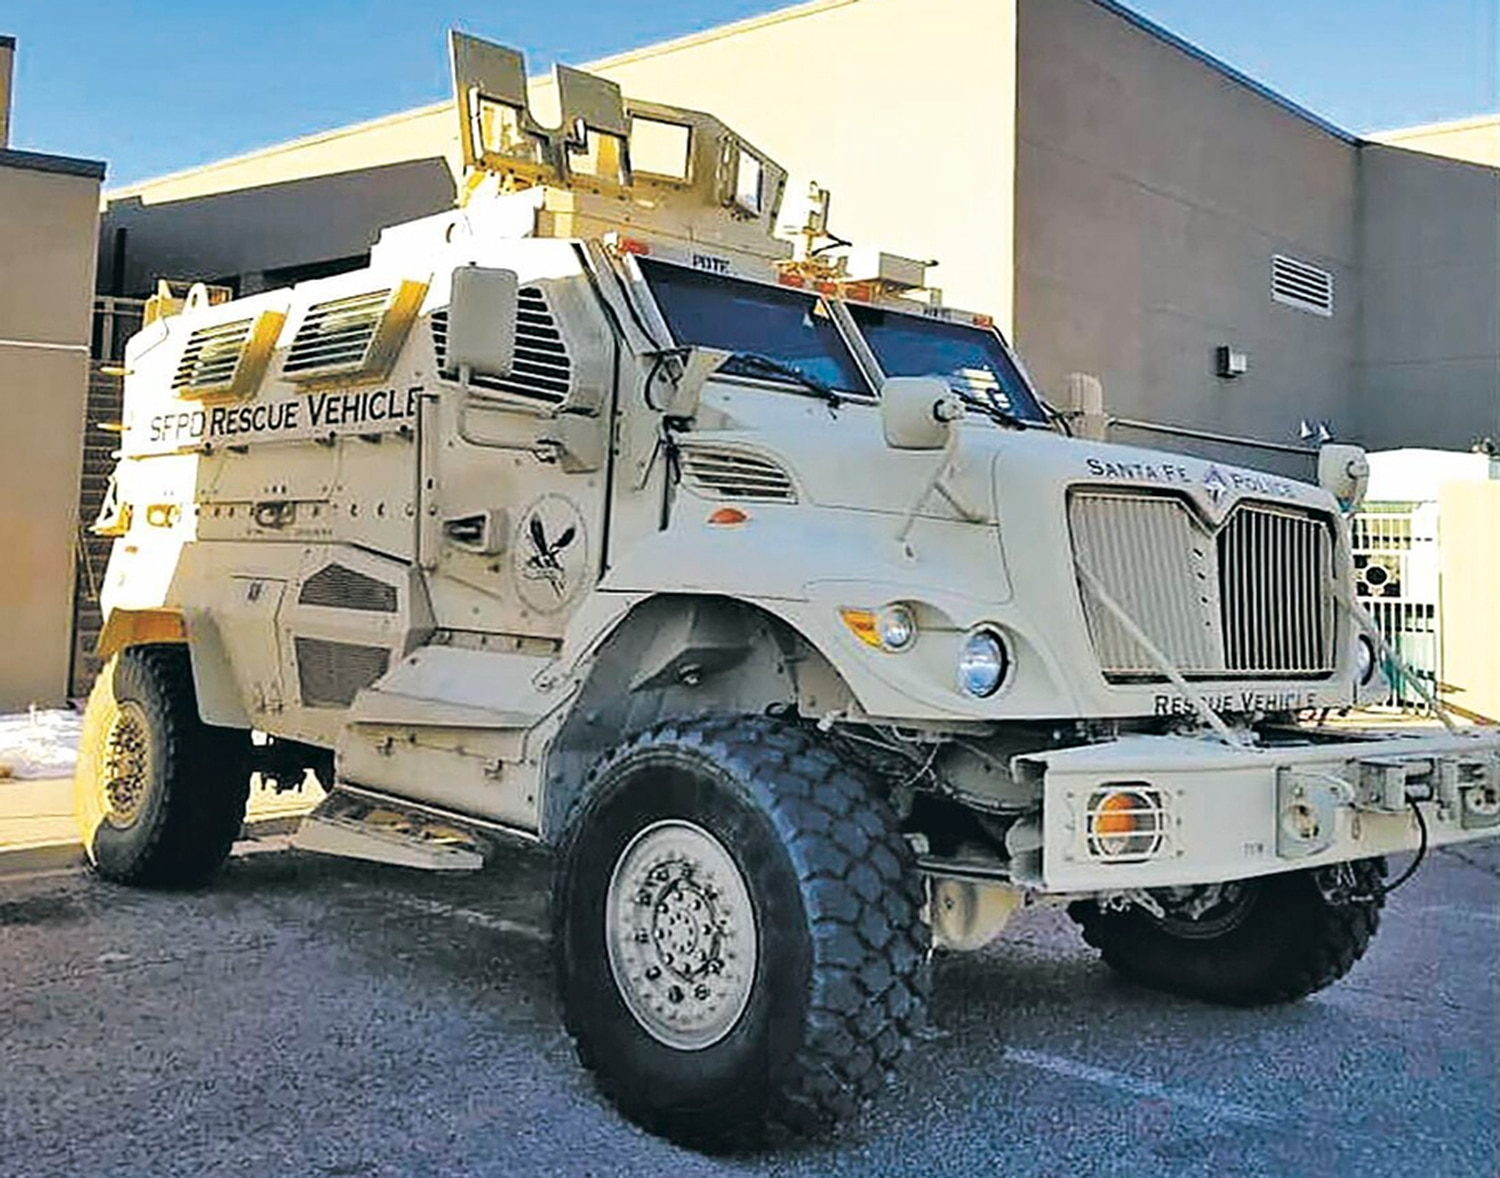 One Santa Fe city councilor is displeased that the city police chief promised to demilitarize by getting rid of the department's Mine Resistant Ambush Protected vehicle, only to ship it 50 miles down the road to another department.